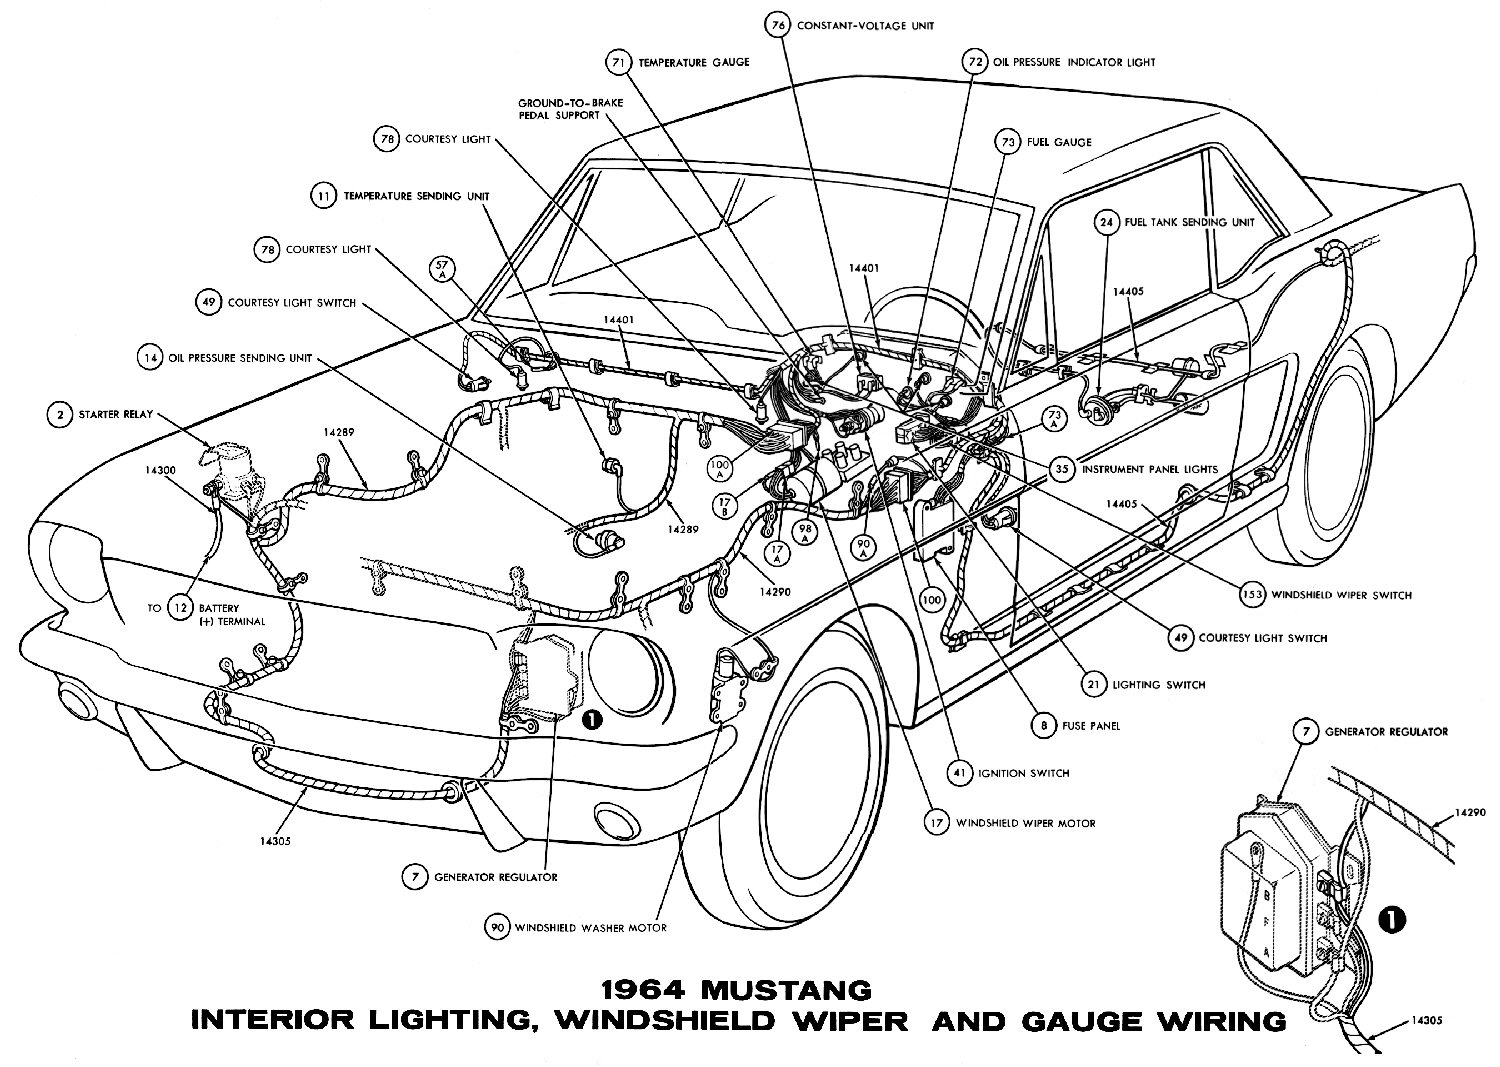 hight resolution of sm1964j 1964 mustang interior lights windshield wiper and gauges pictorial or schematic